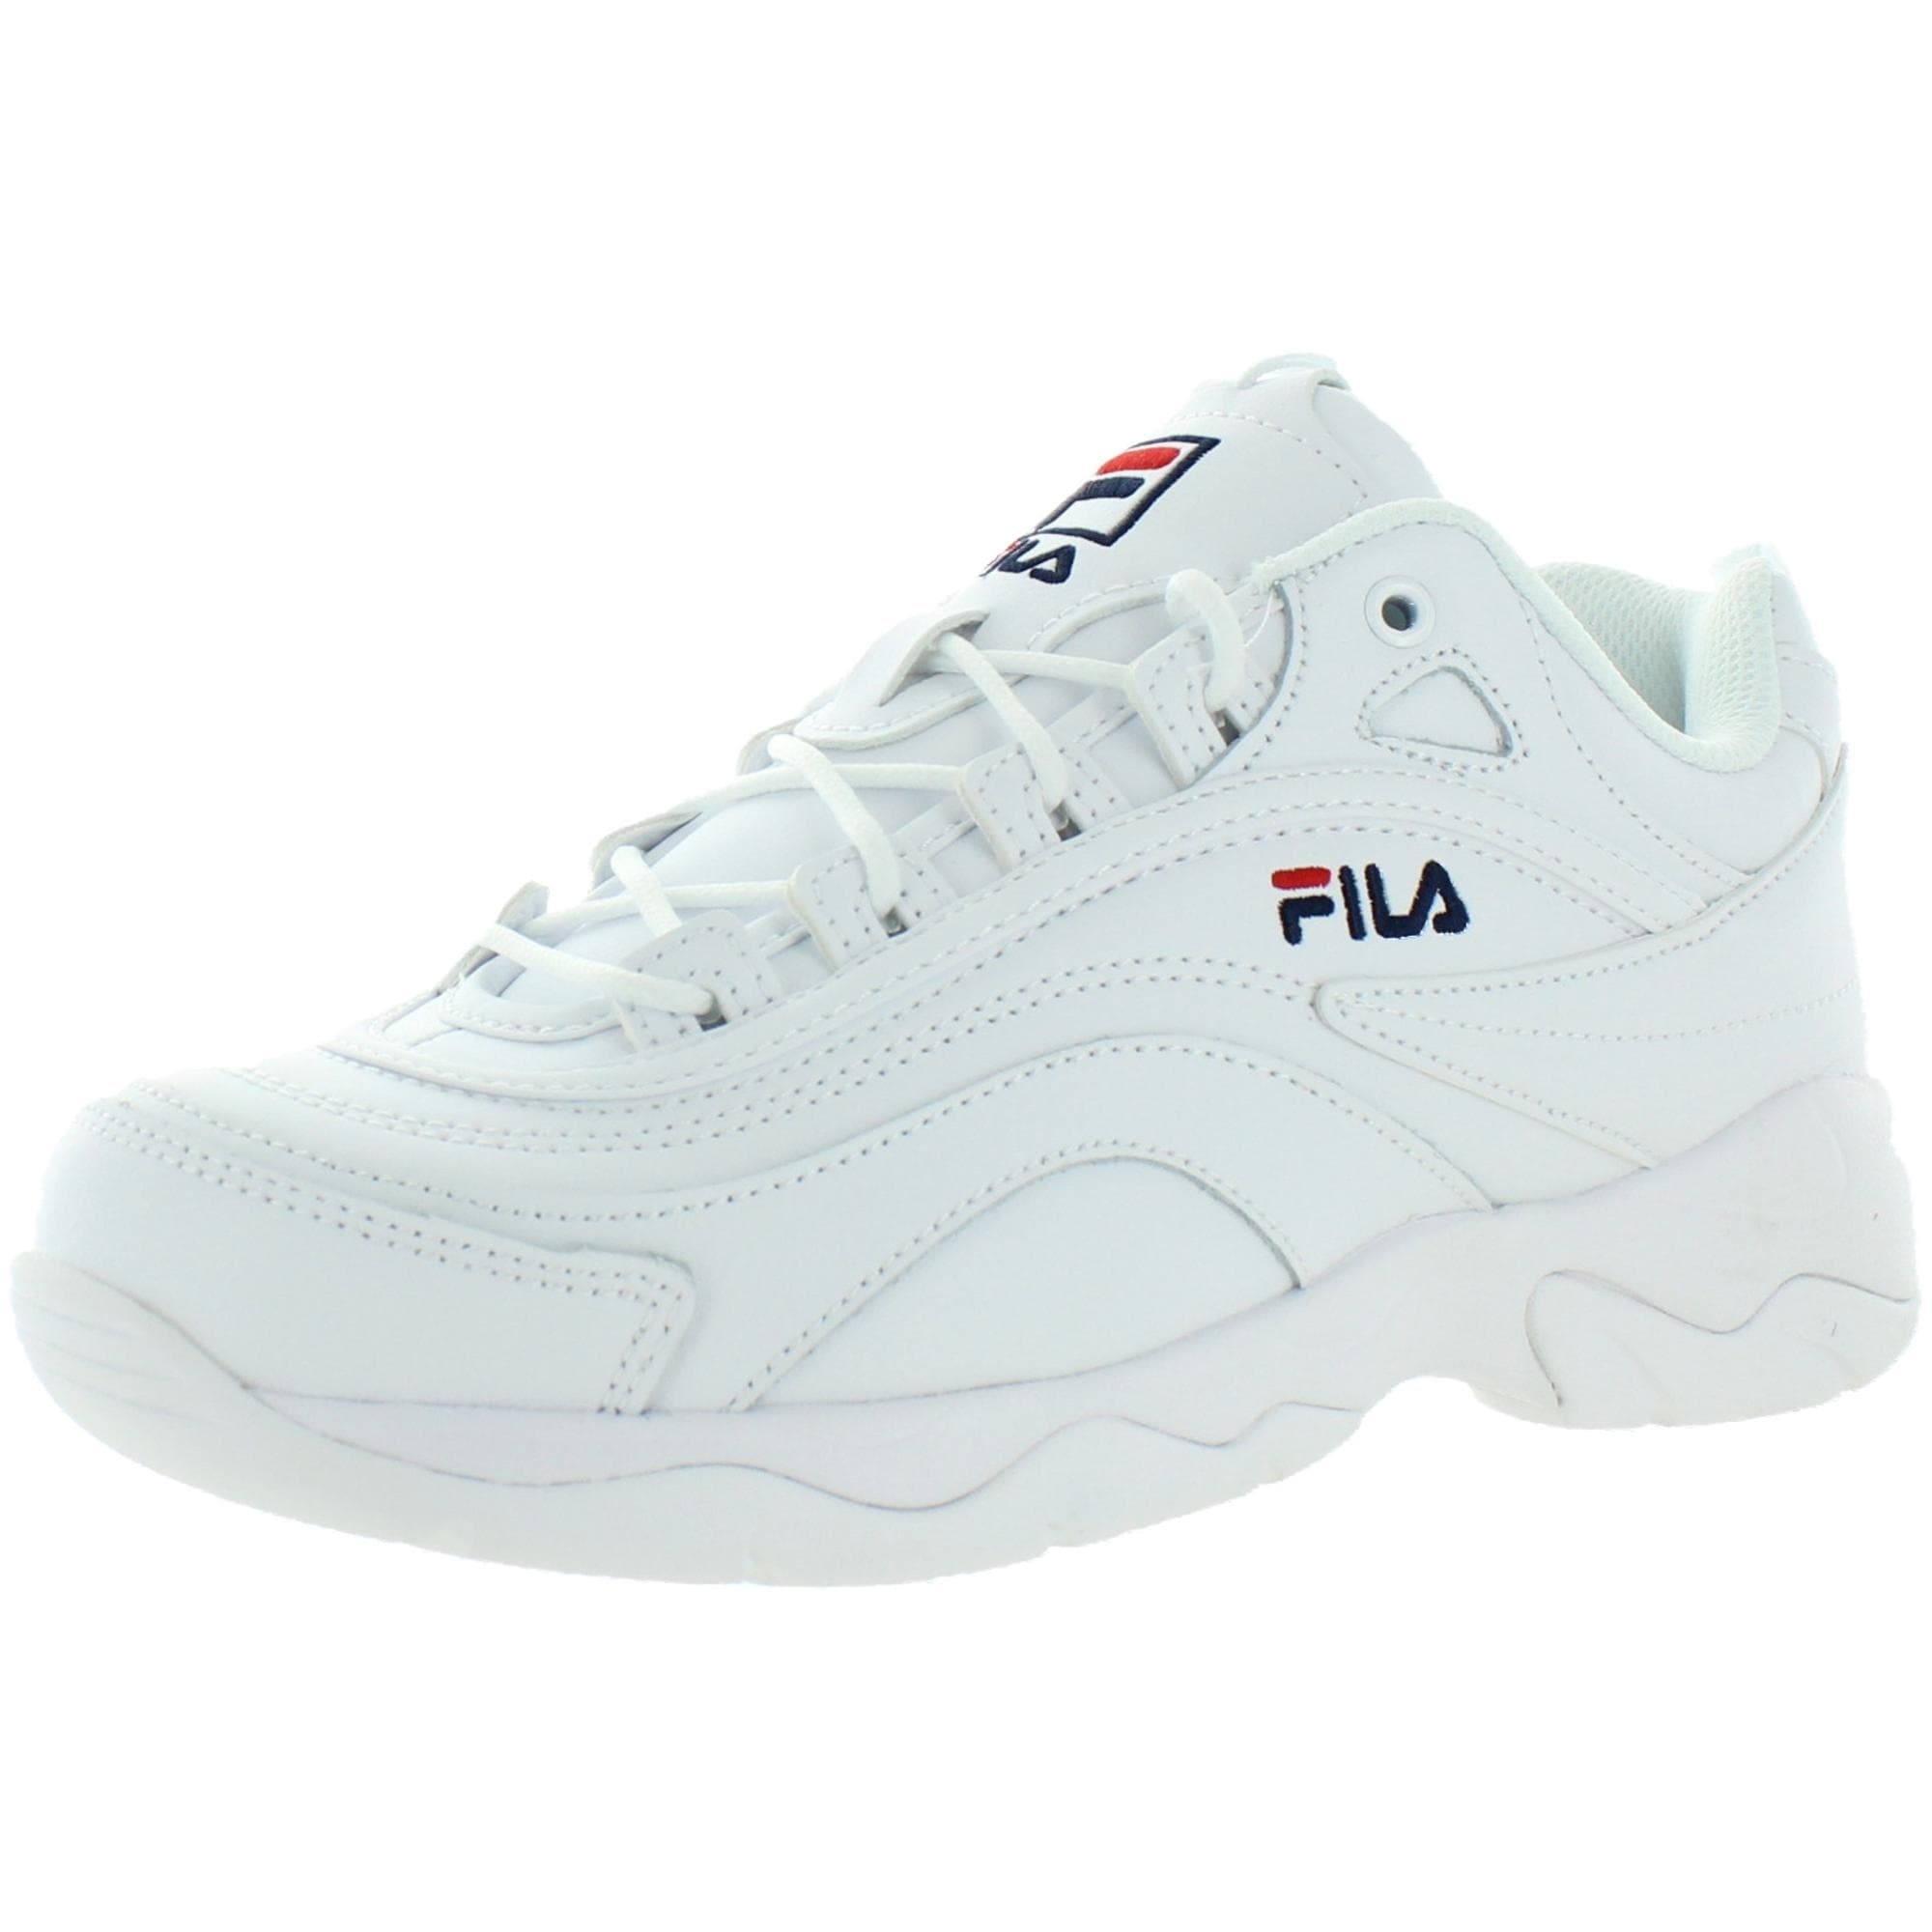 fila types of shoes